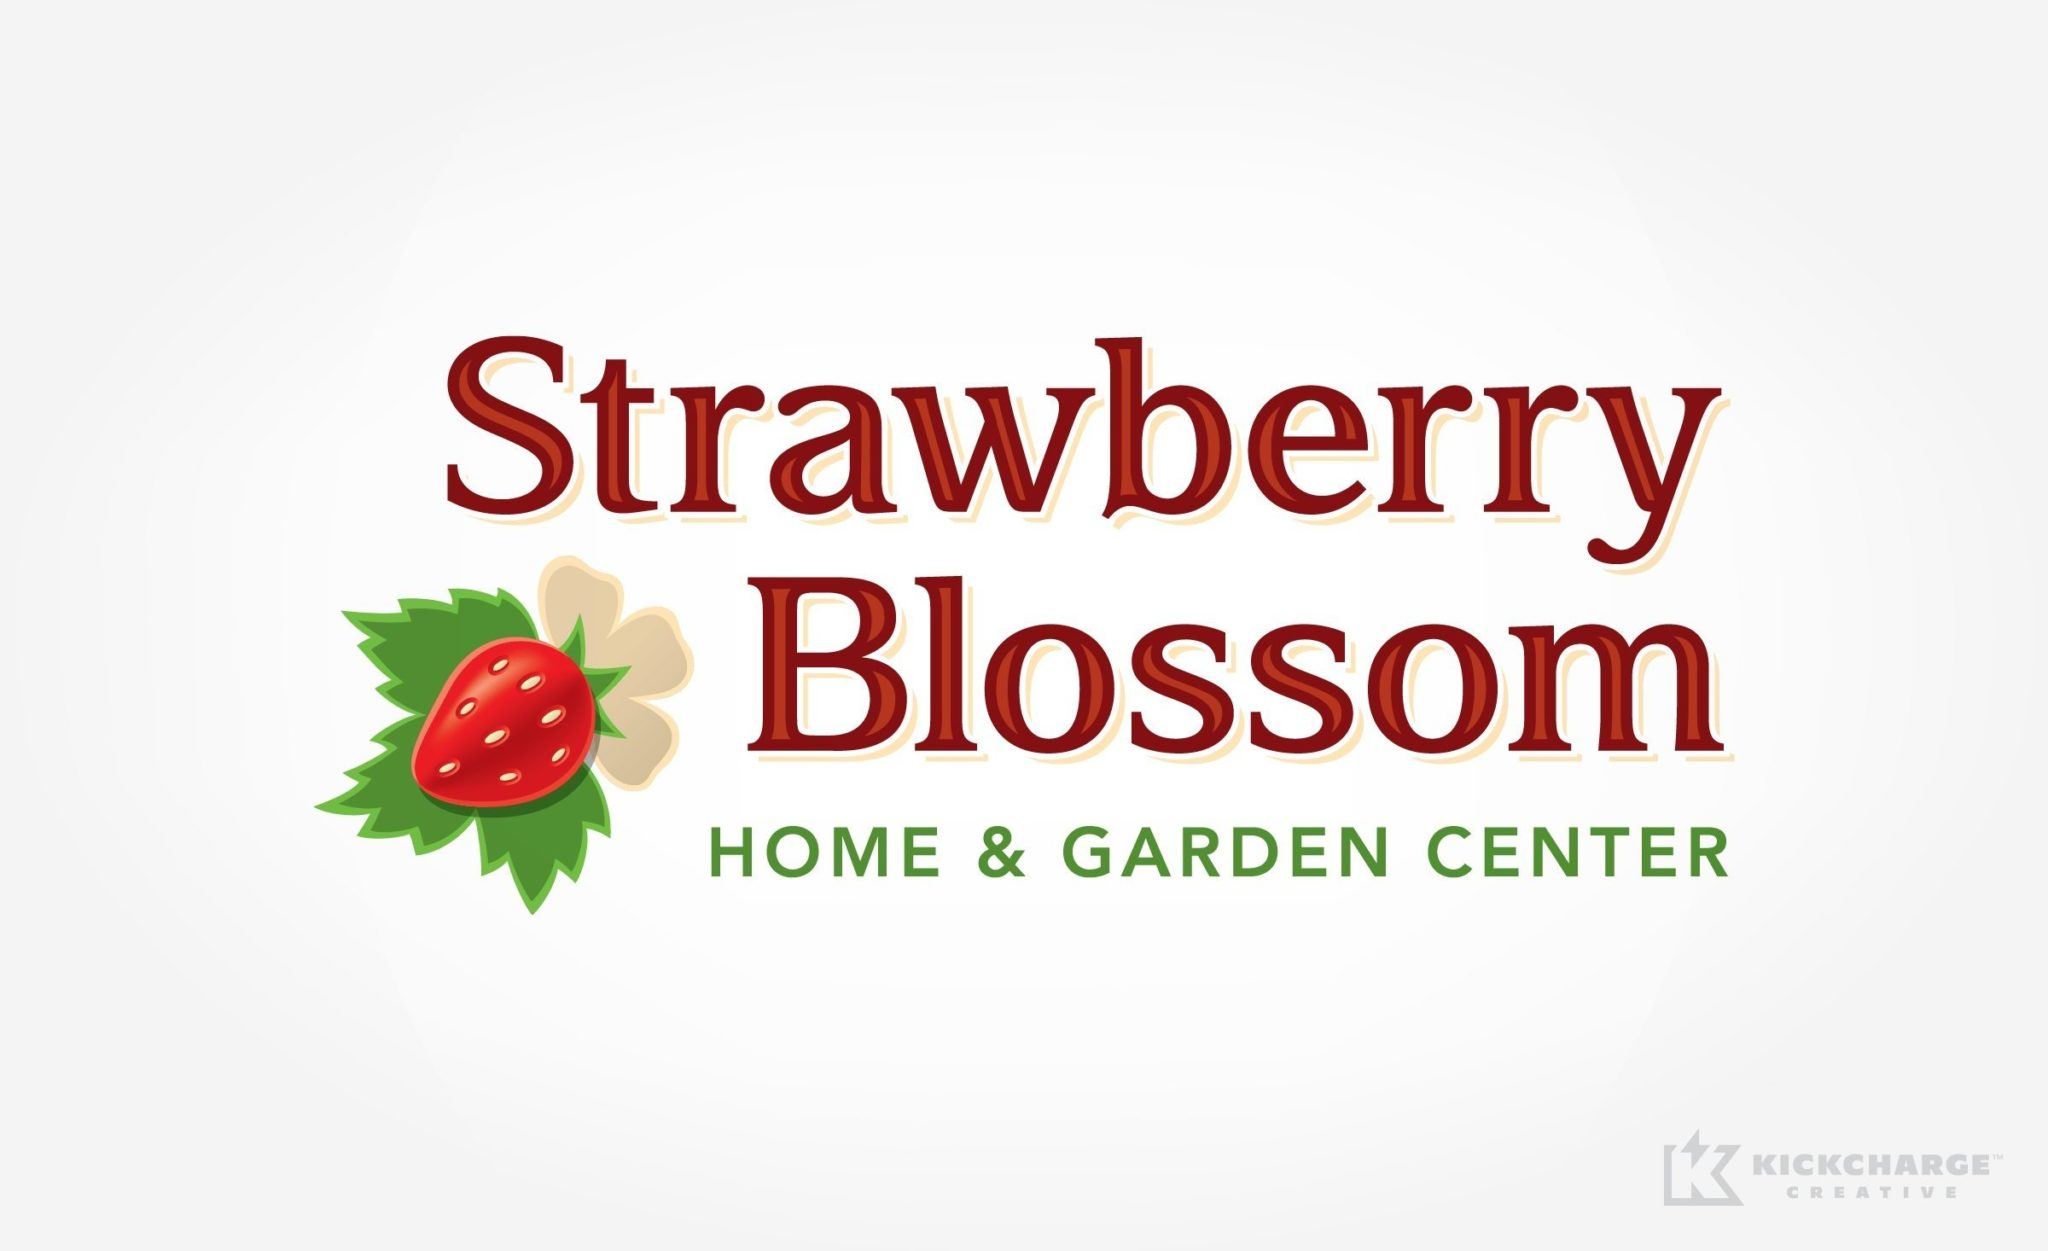 Strawberry Blossom & Plochs Home & Garden Centers